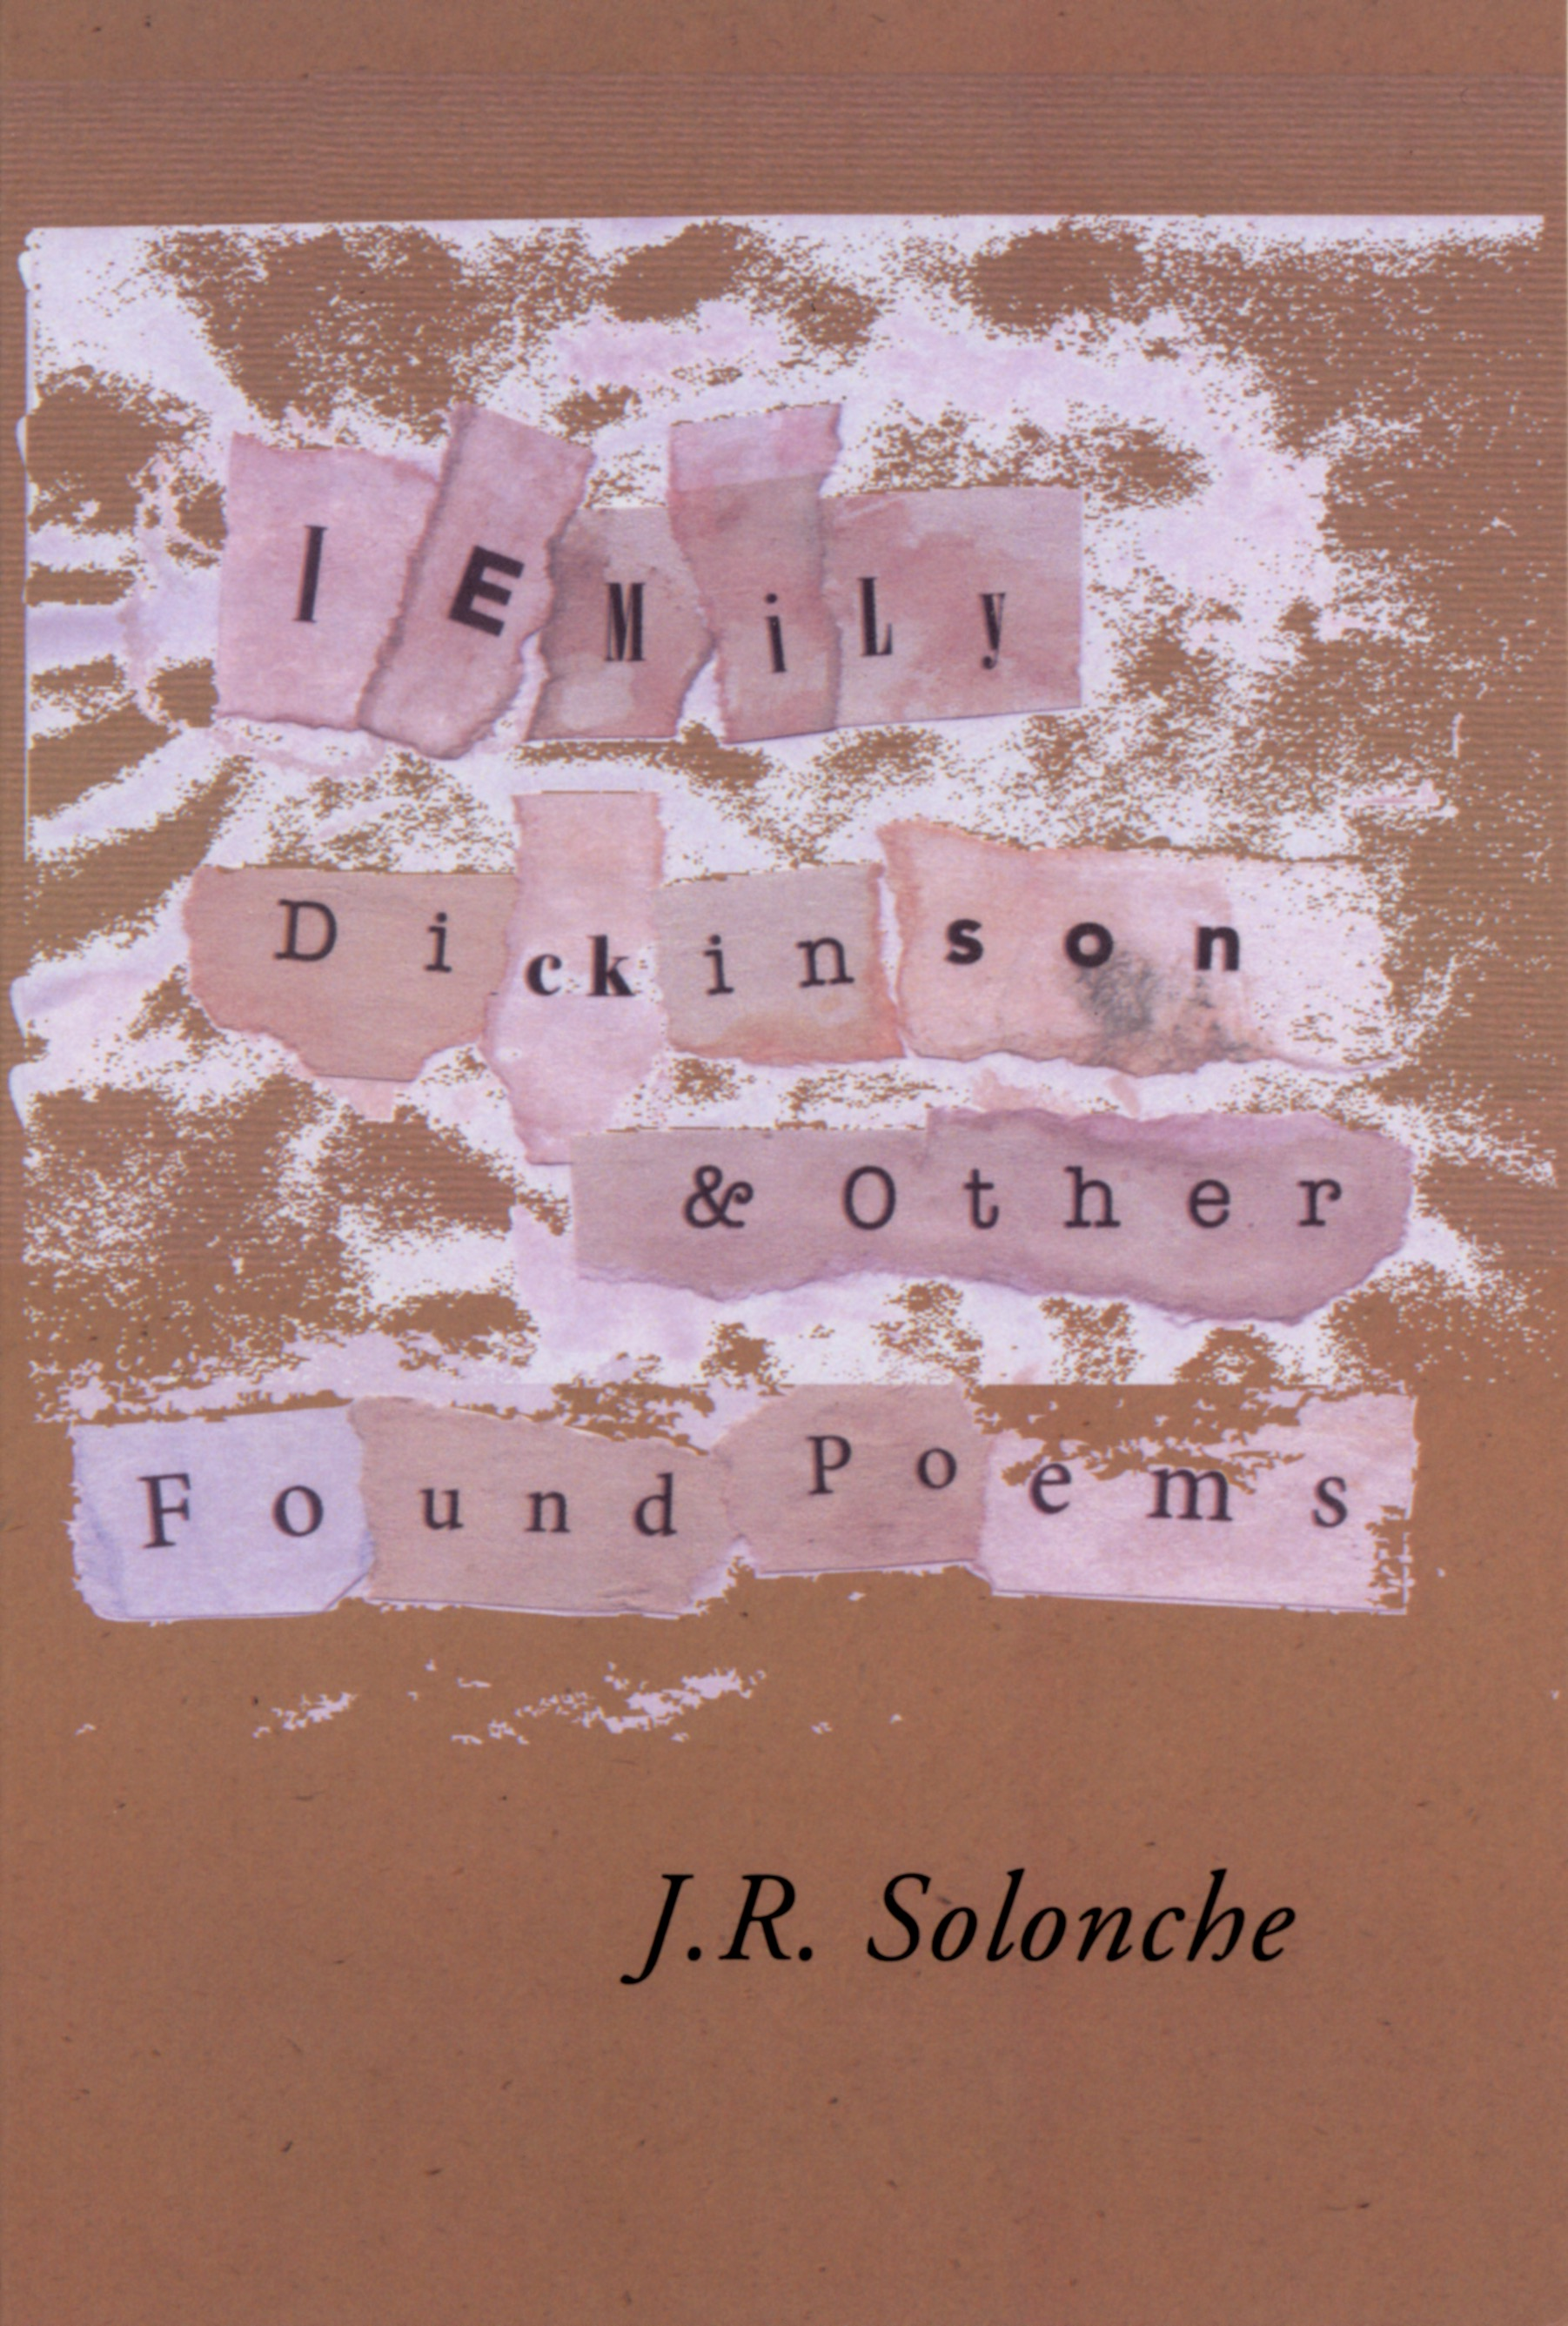 I Emily Dickinson & Other Found Poems